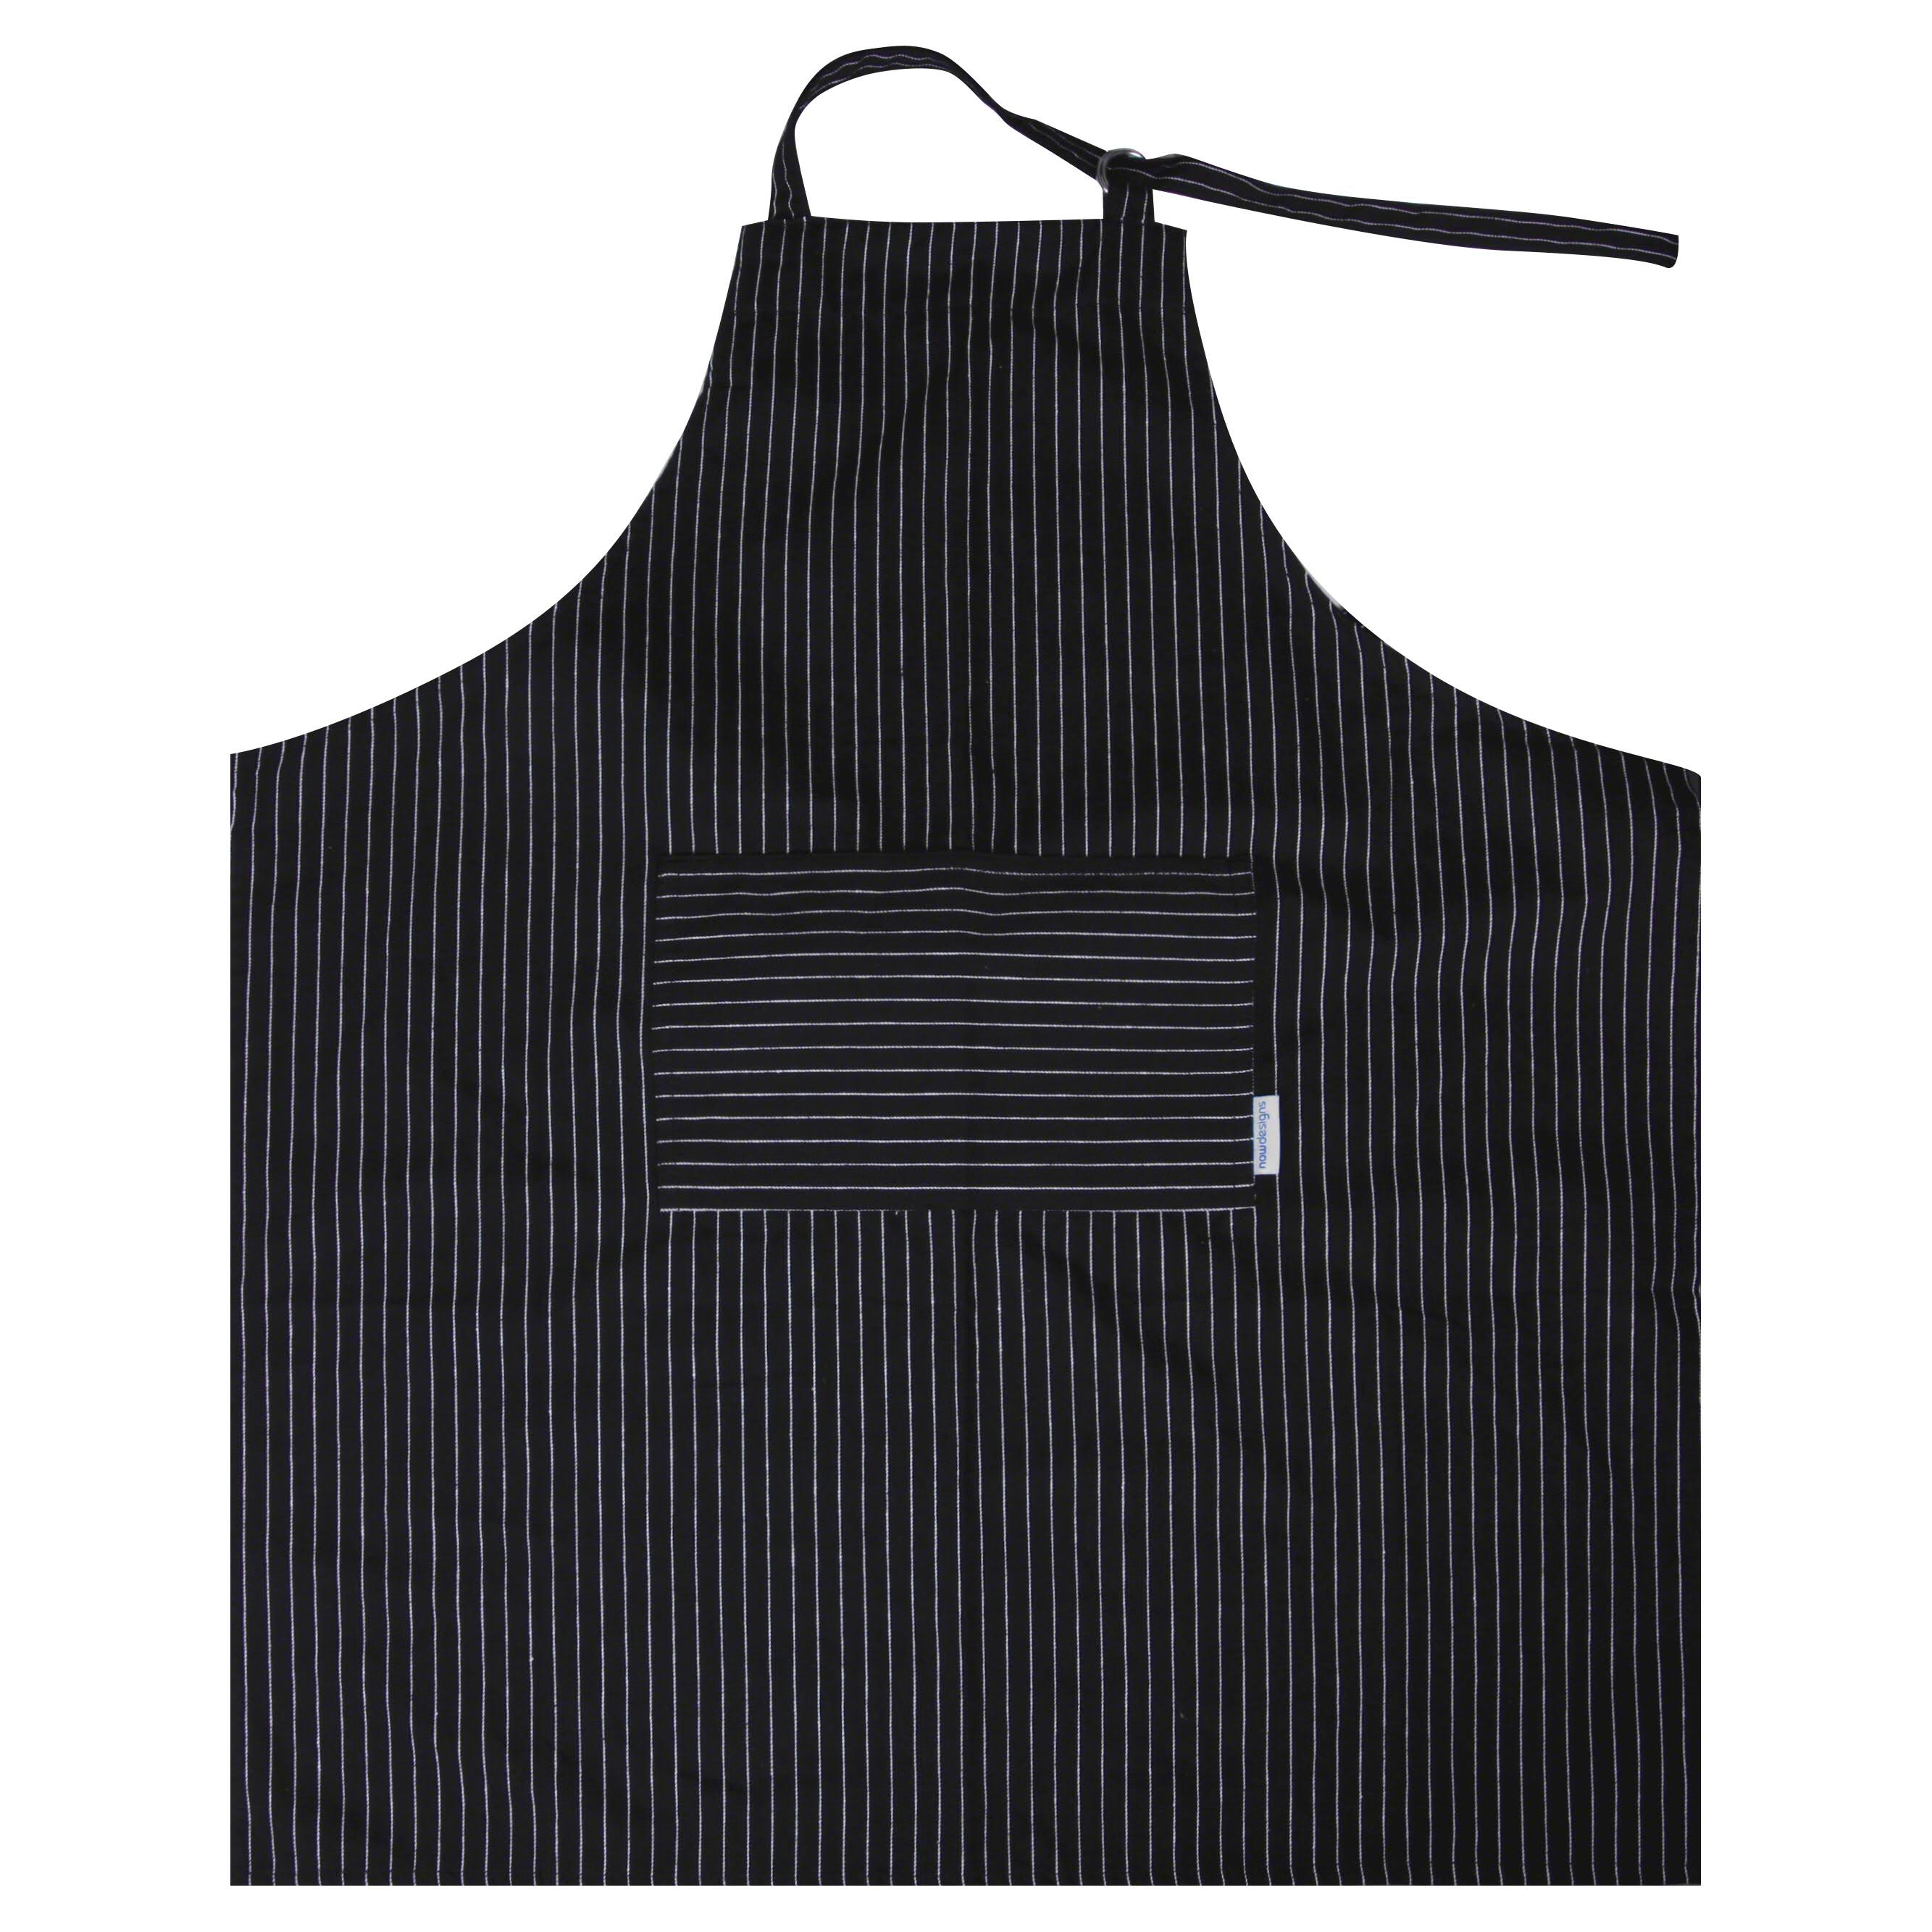 Now Designs Apron, Basic, Pinstripe Black